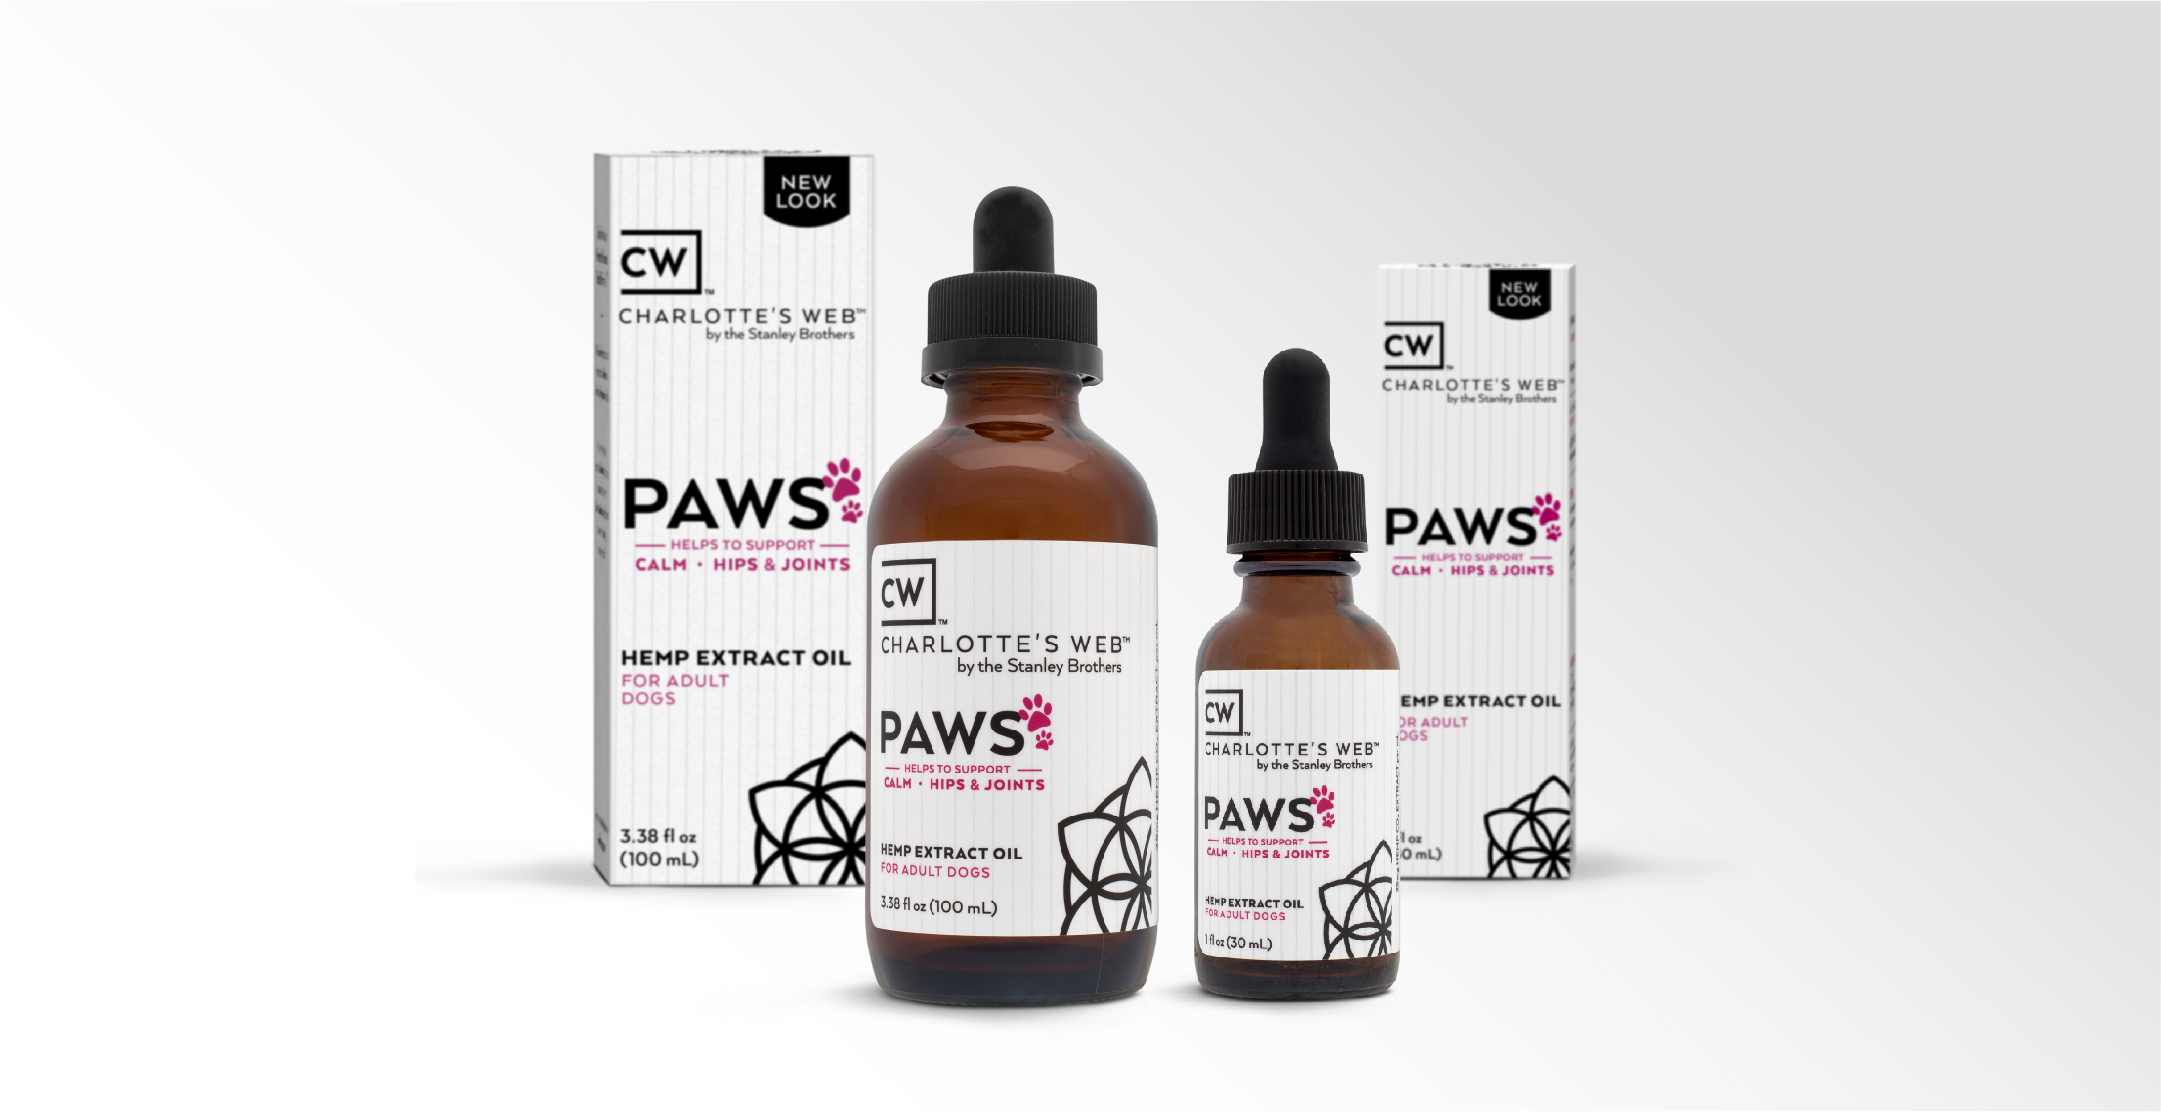 Paws line of CBD products for pets